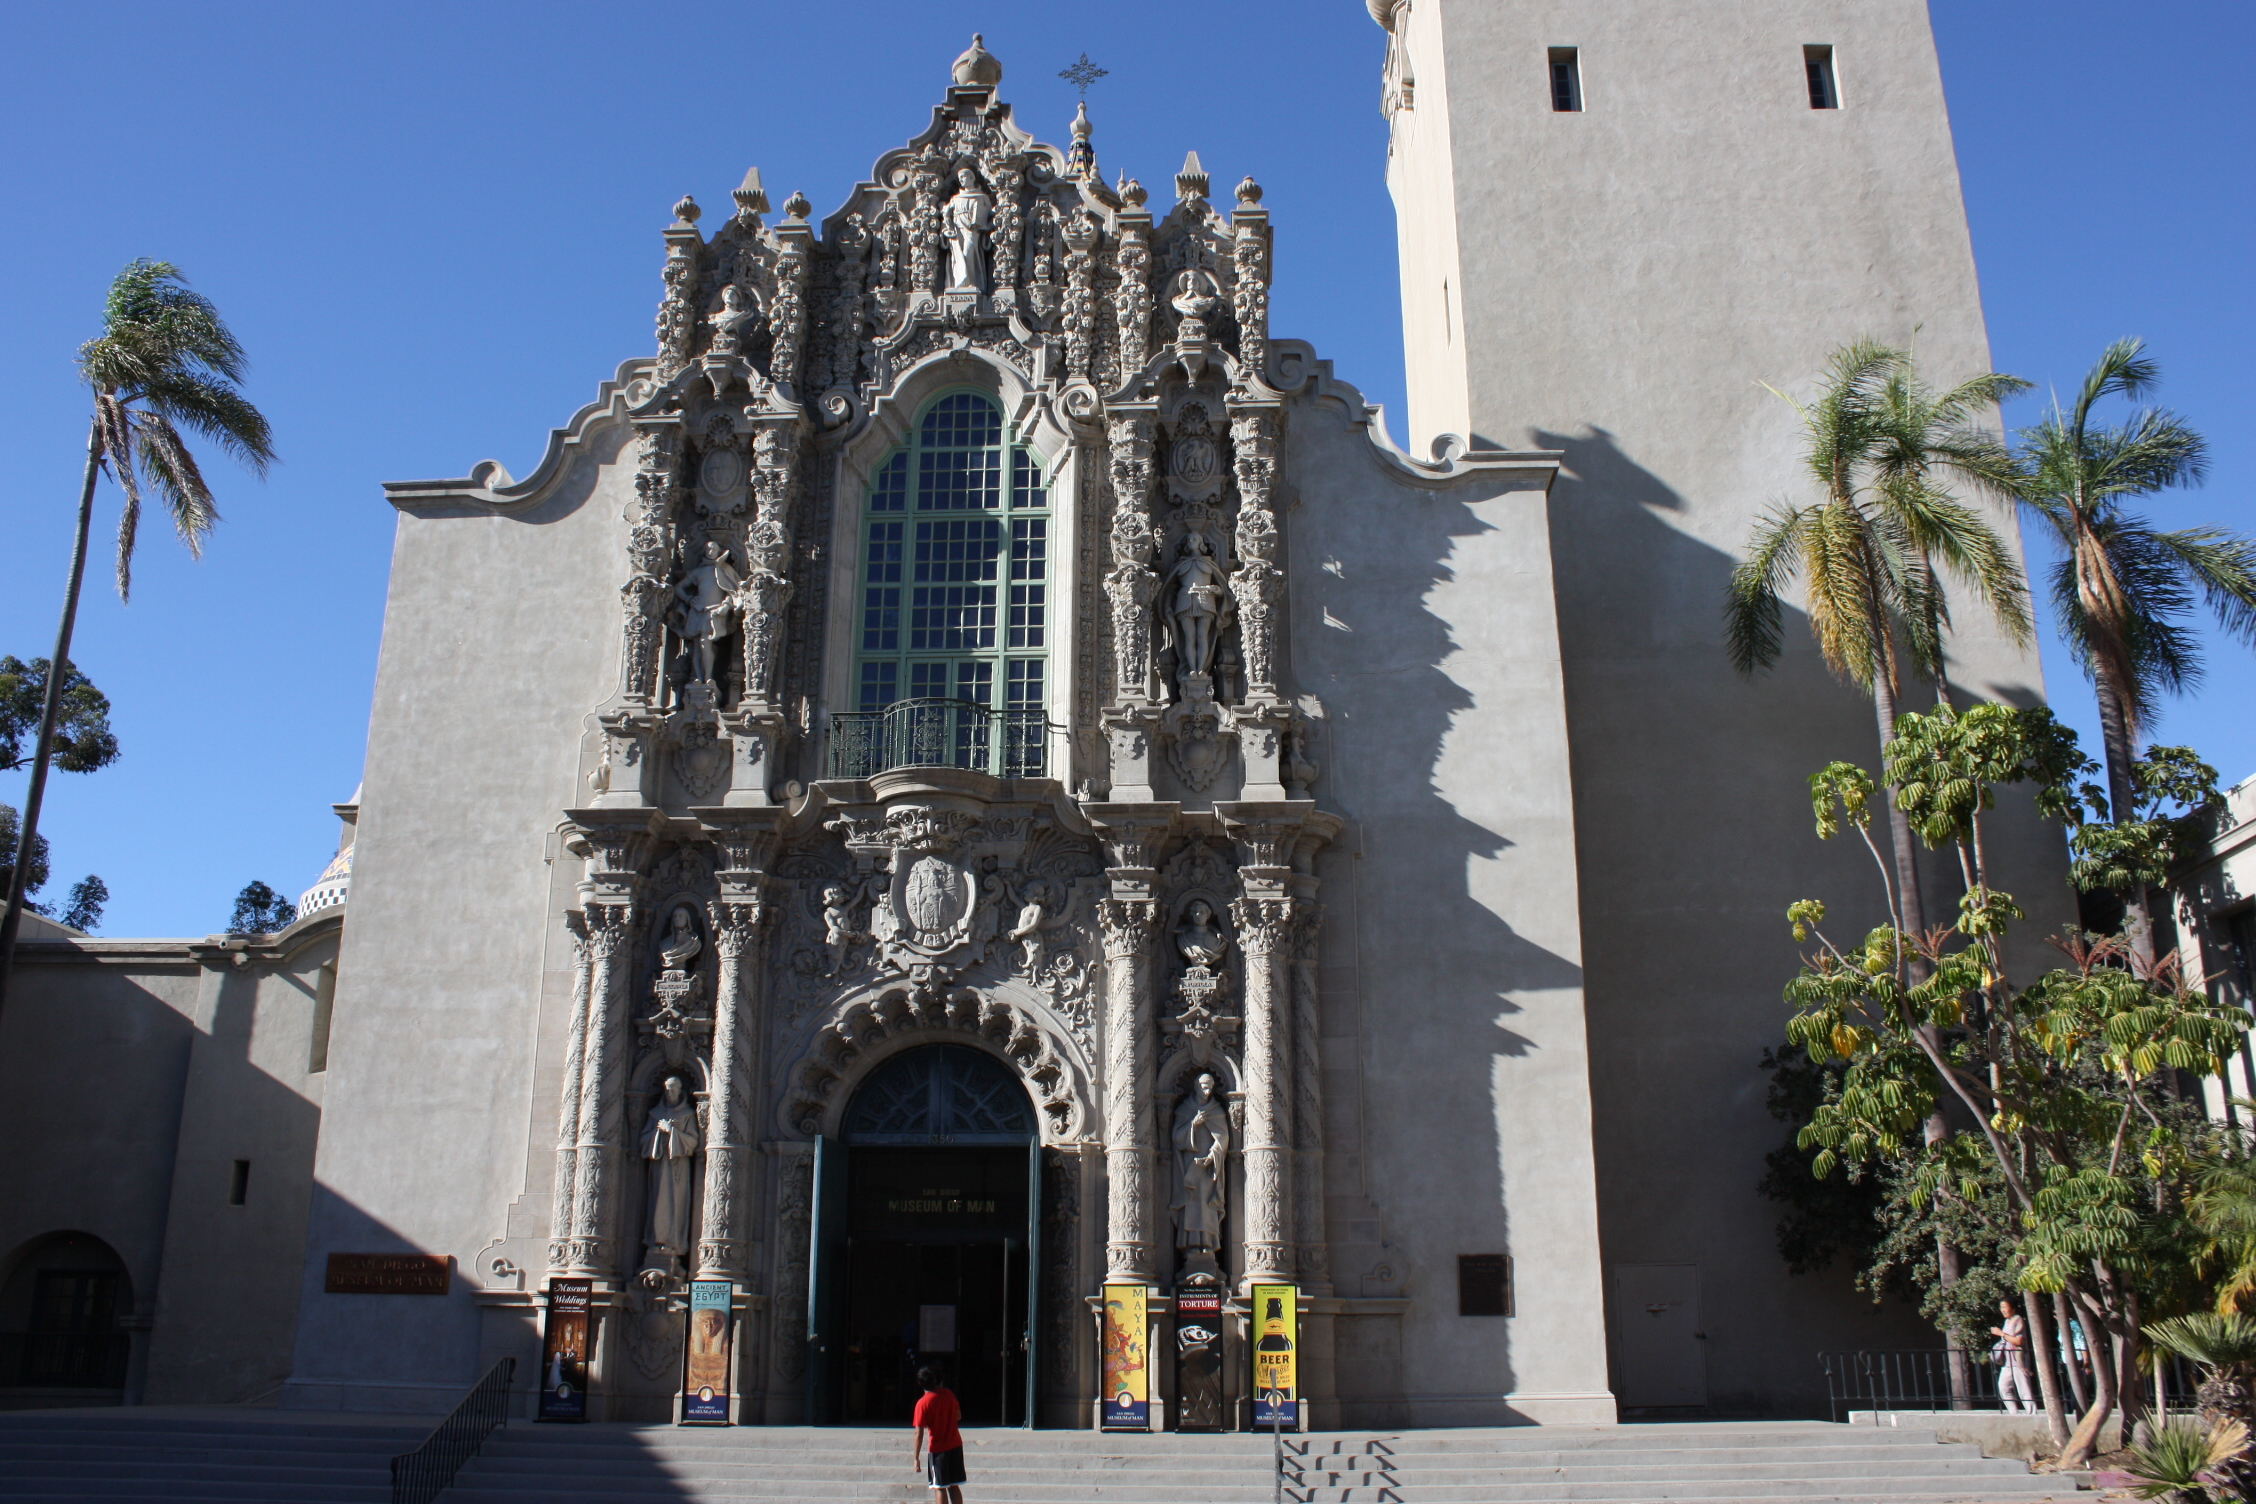 Shelter Island San Diego, San Diego Museum of Man   Let's Go To The Museum